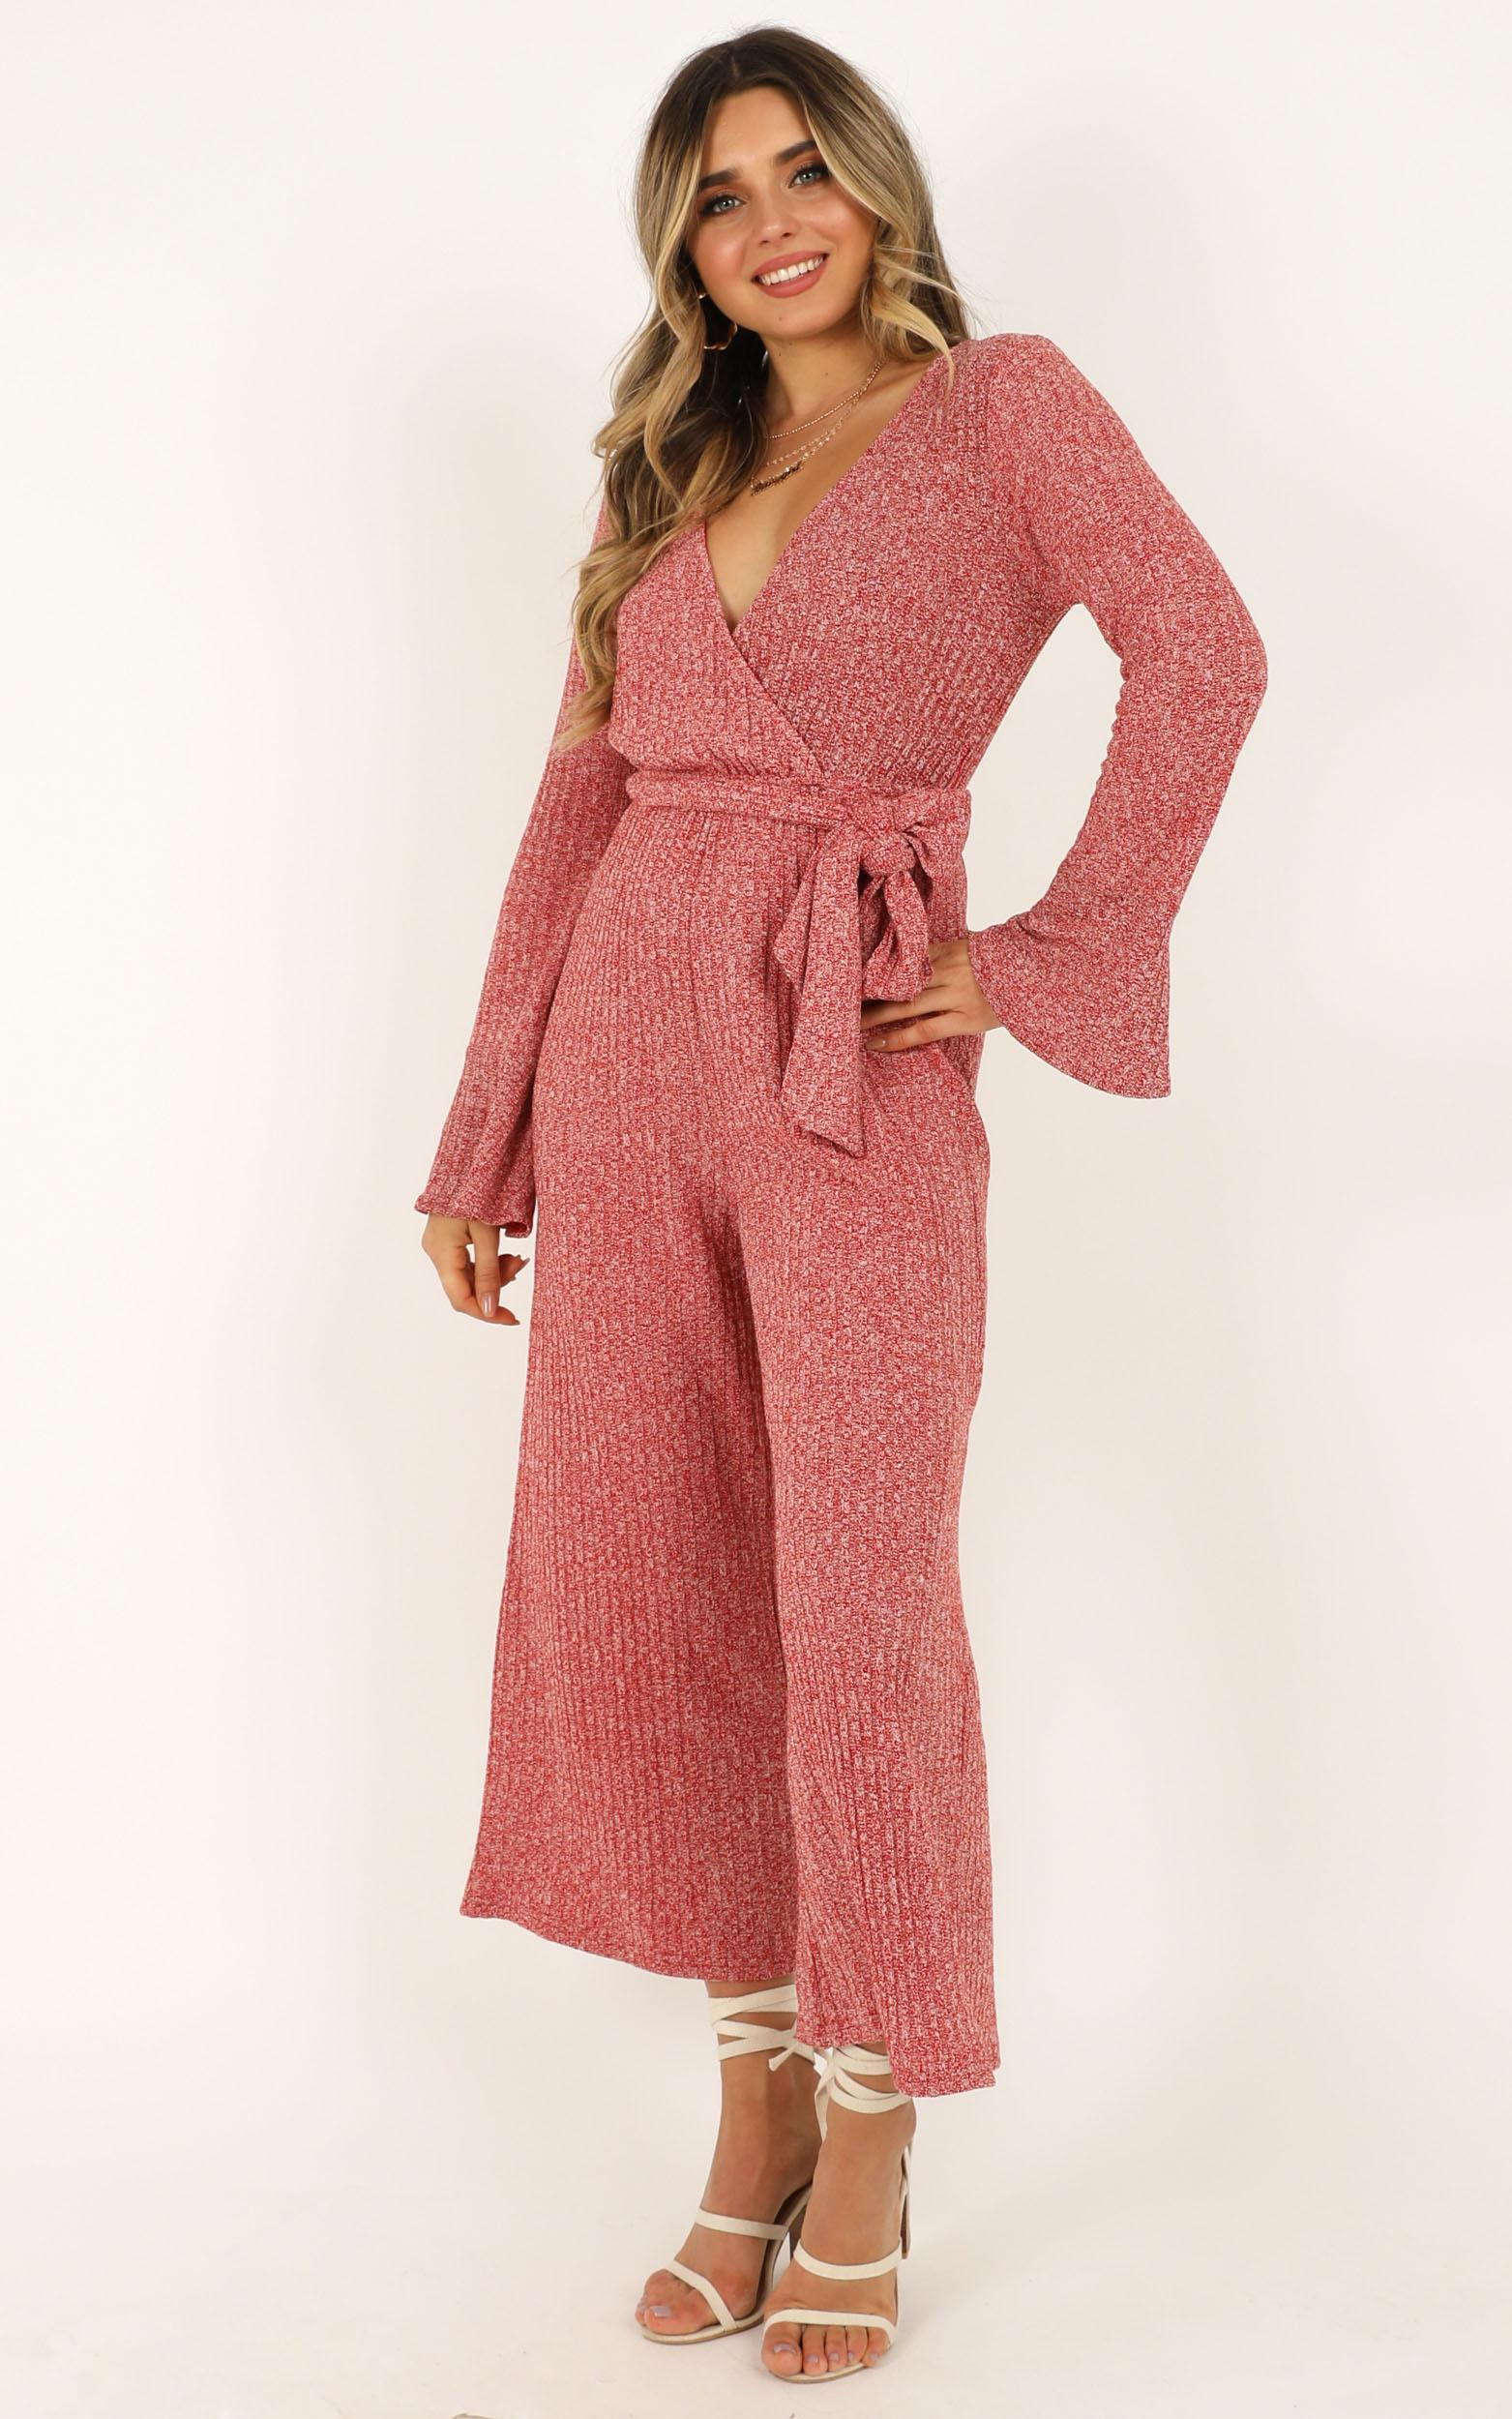 Feel Like Flying Jumpsuit in rust marle- 20 (XXXXL), Rust, hi-res image number null